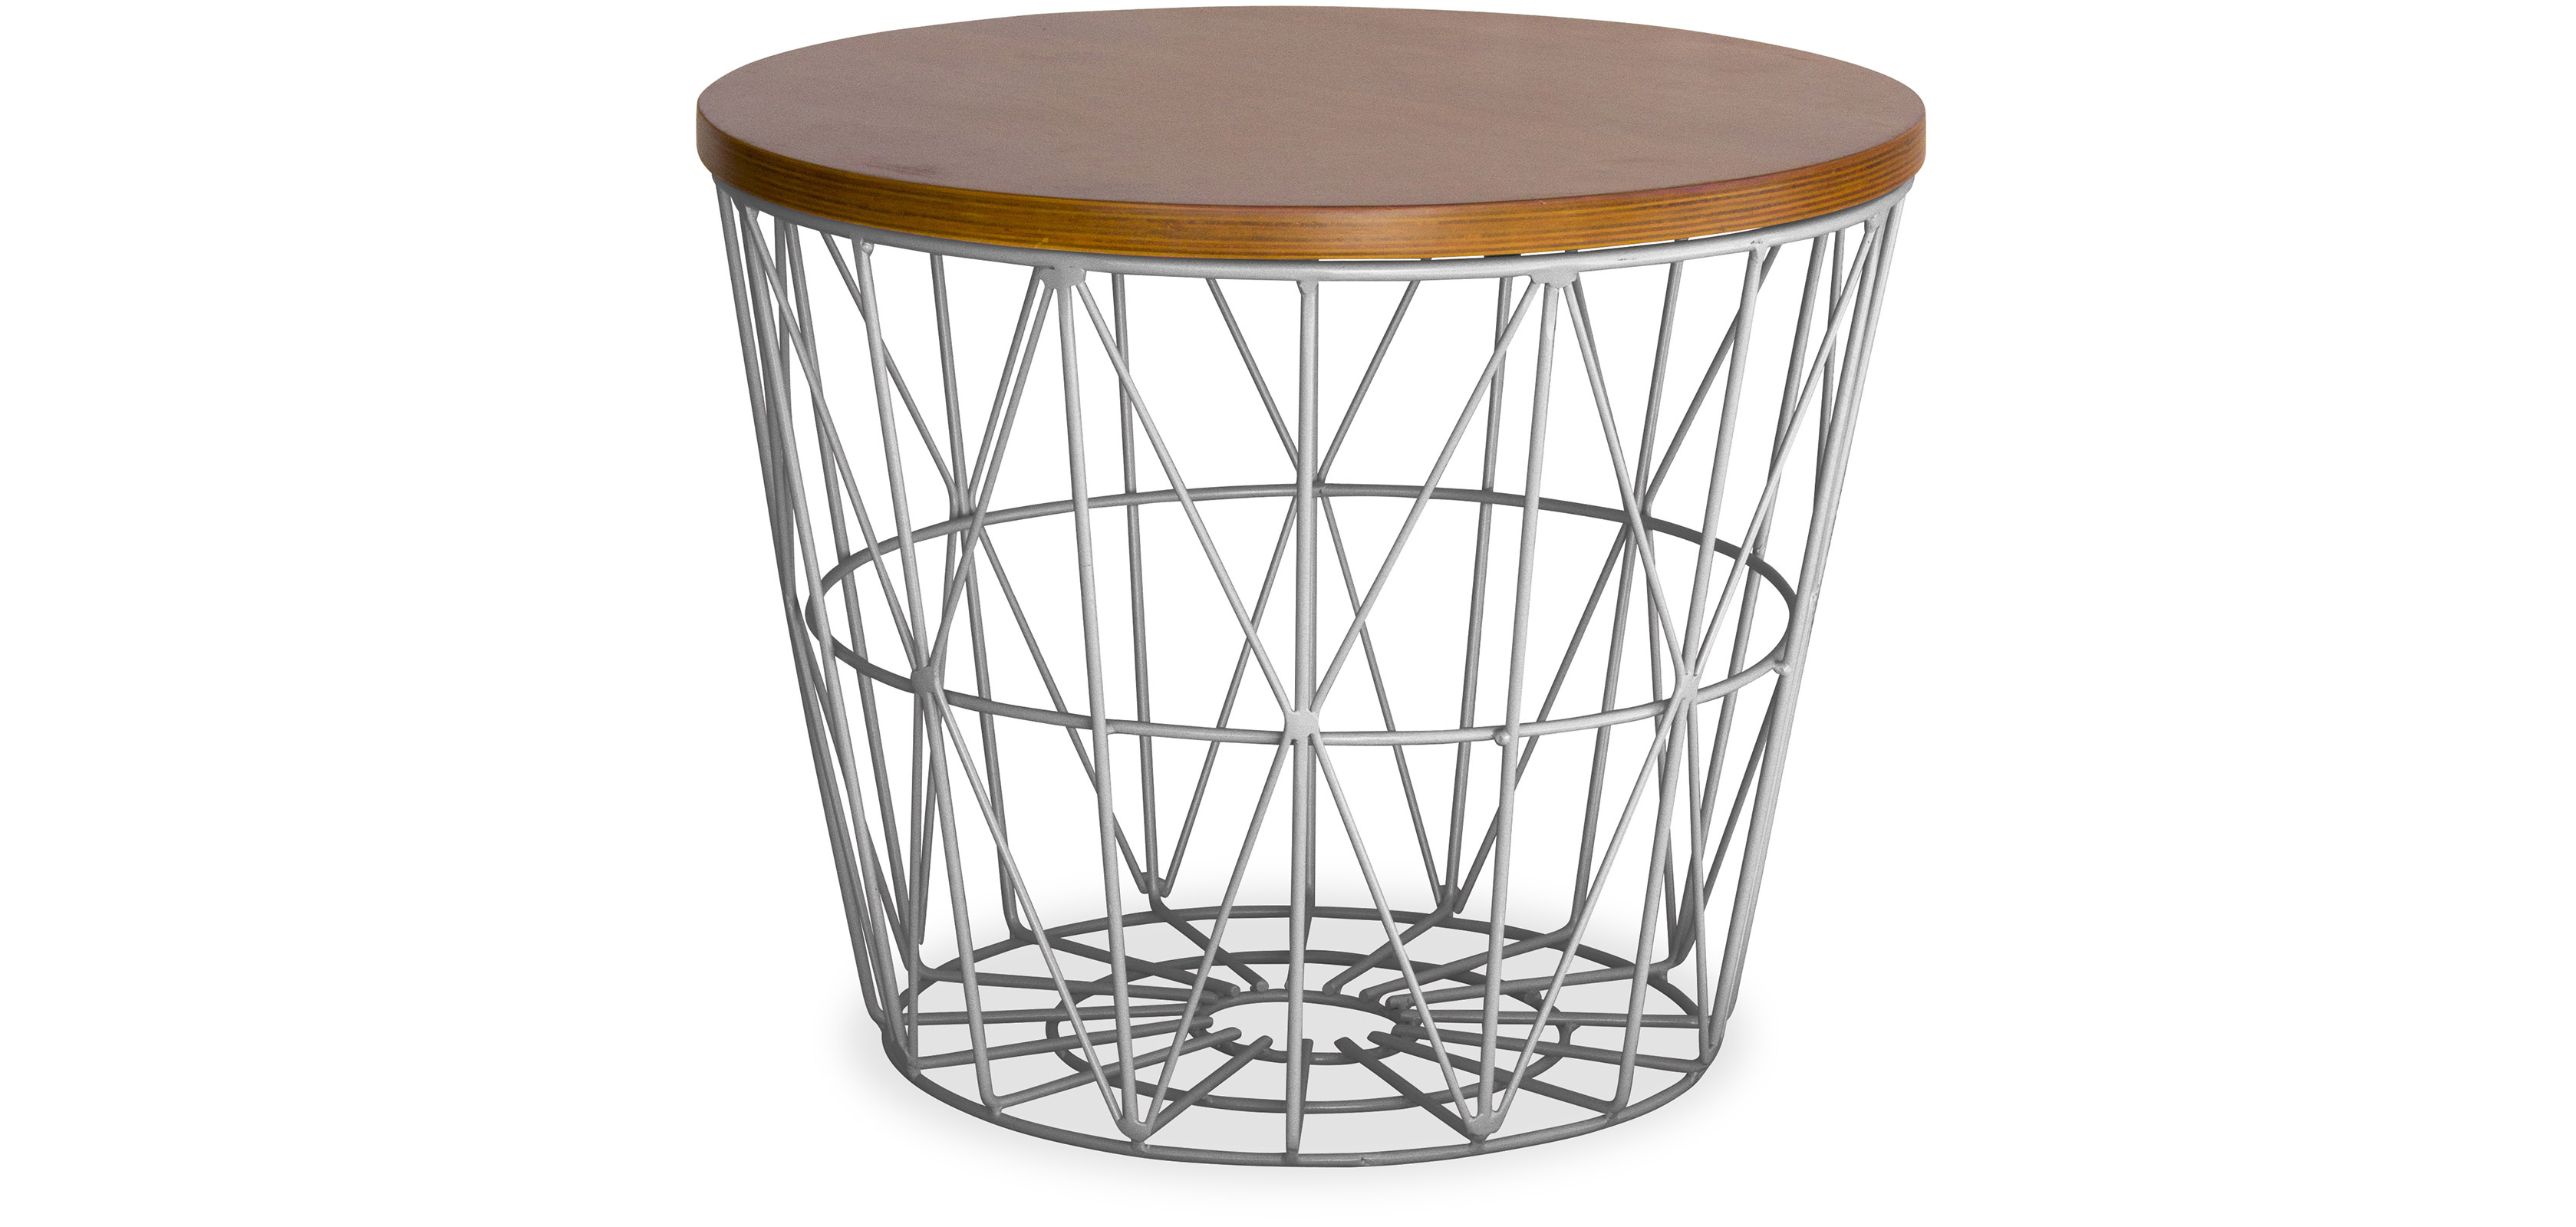 Basket side table occasional tables - Tables d appoint ...